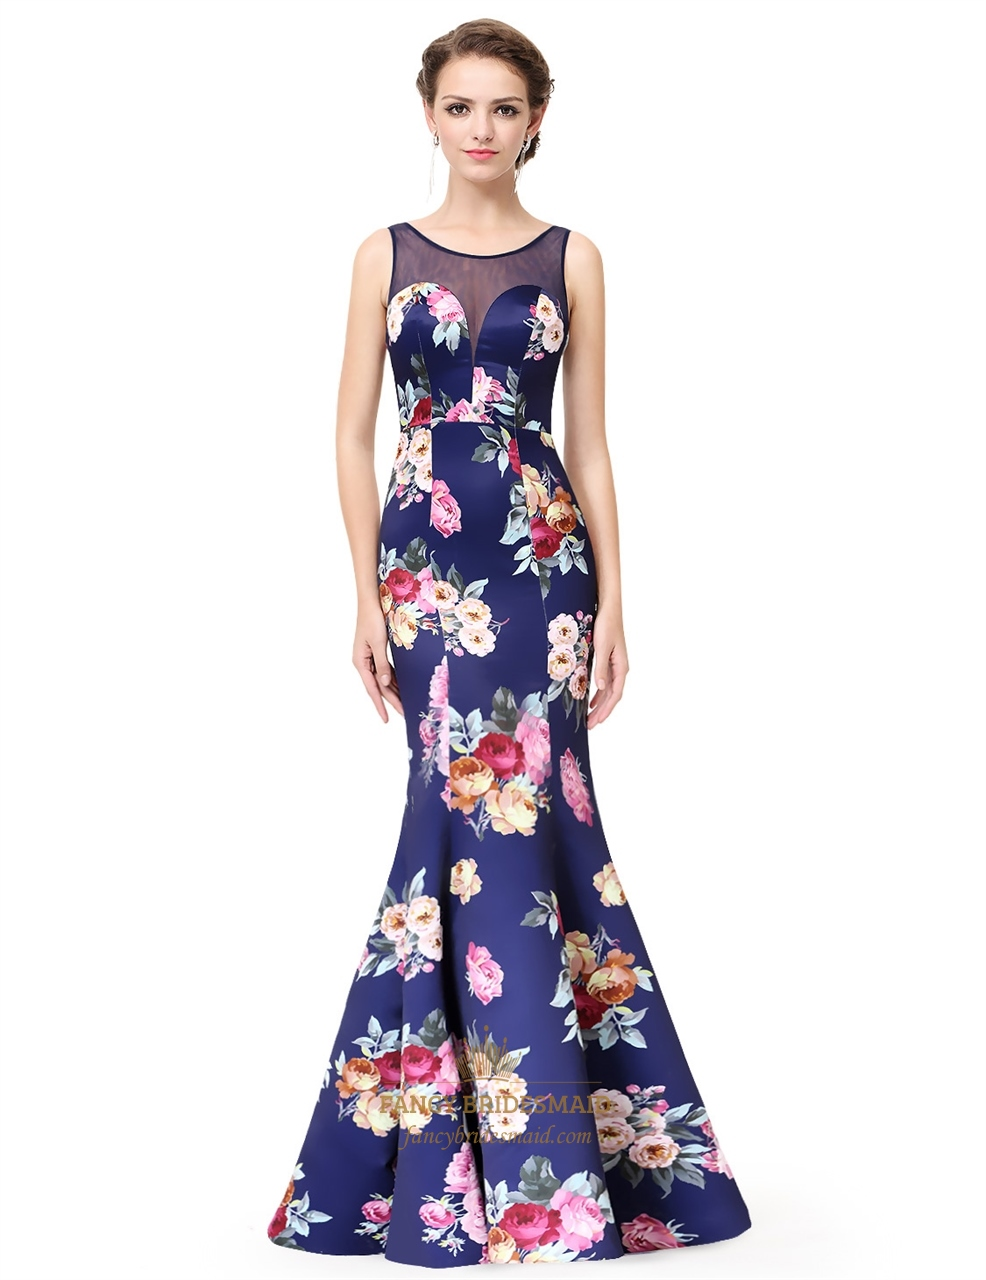 Floral Print Mermaid Evening Dress Open Back Long With Illusion Top ...